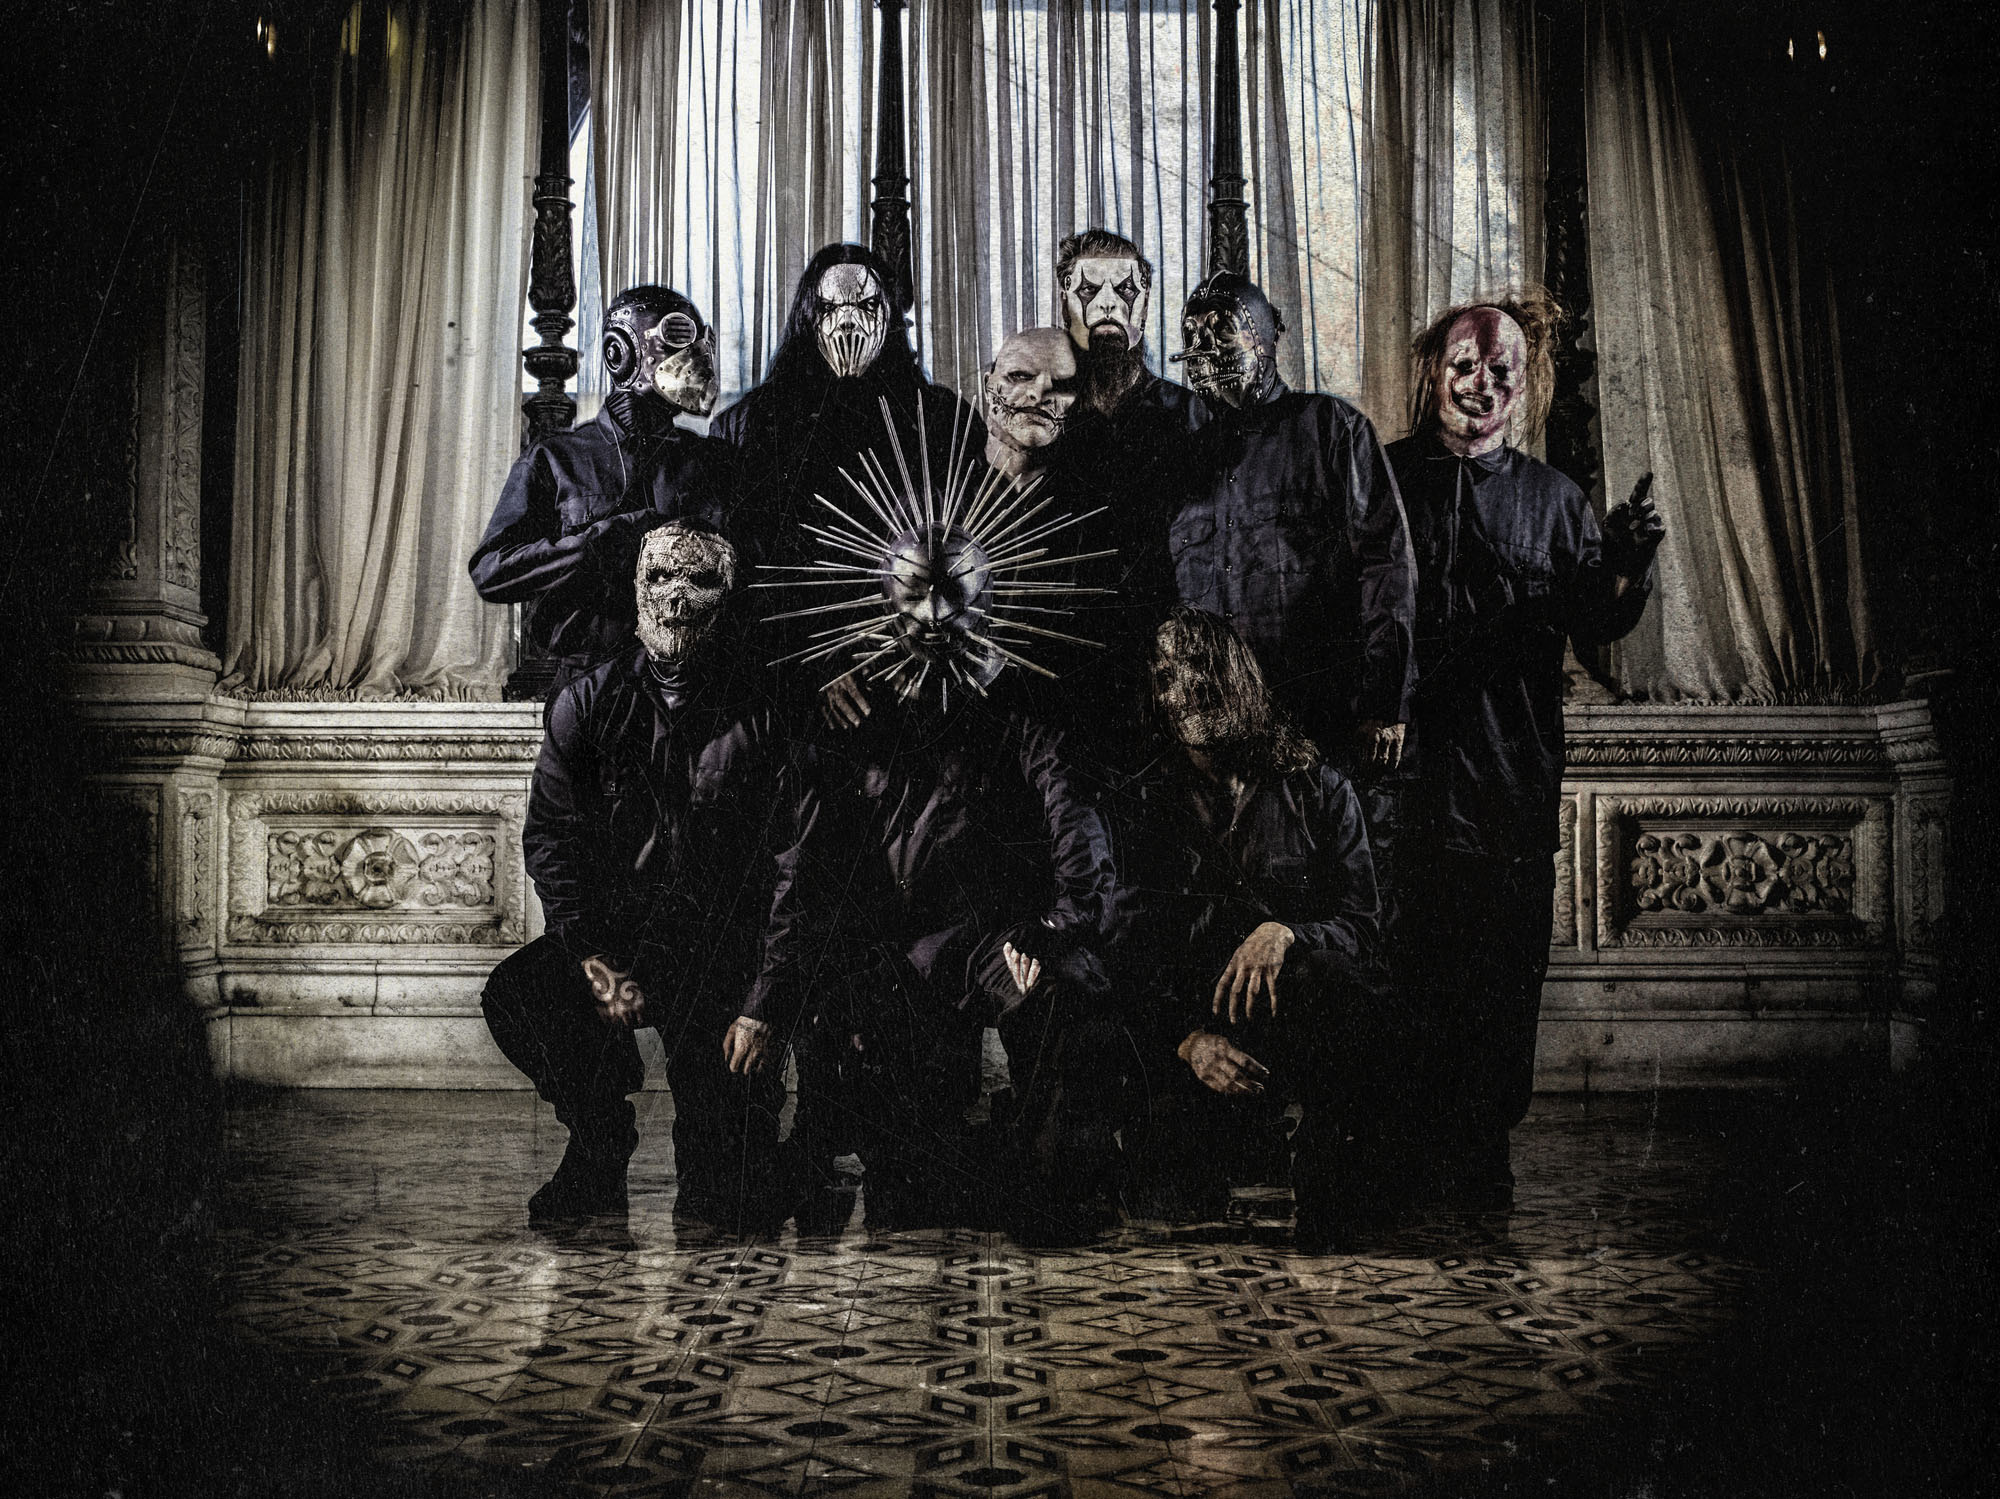 Slipknot - Photo by M. Shawn Crahan